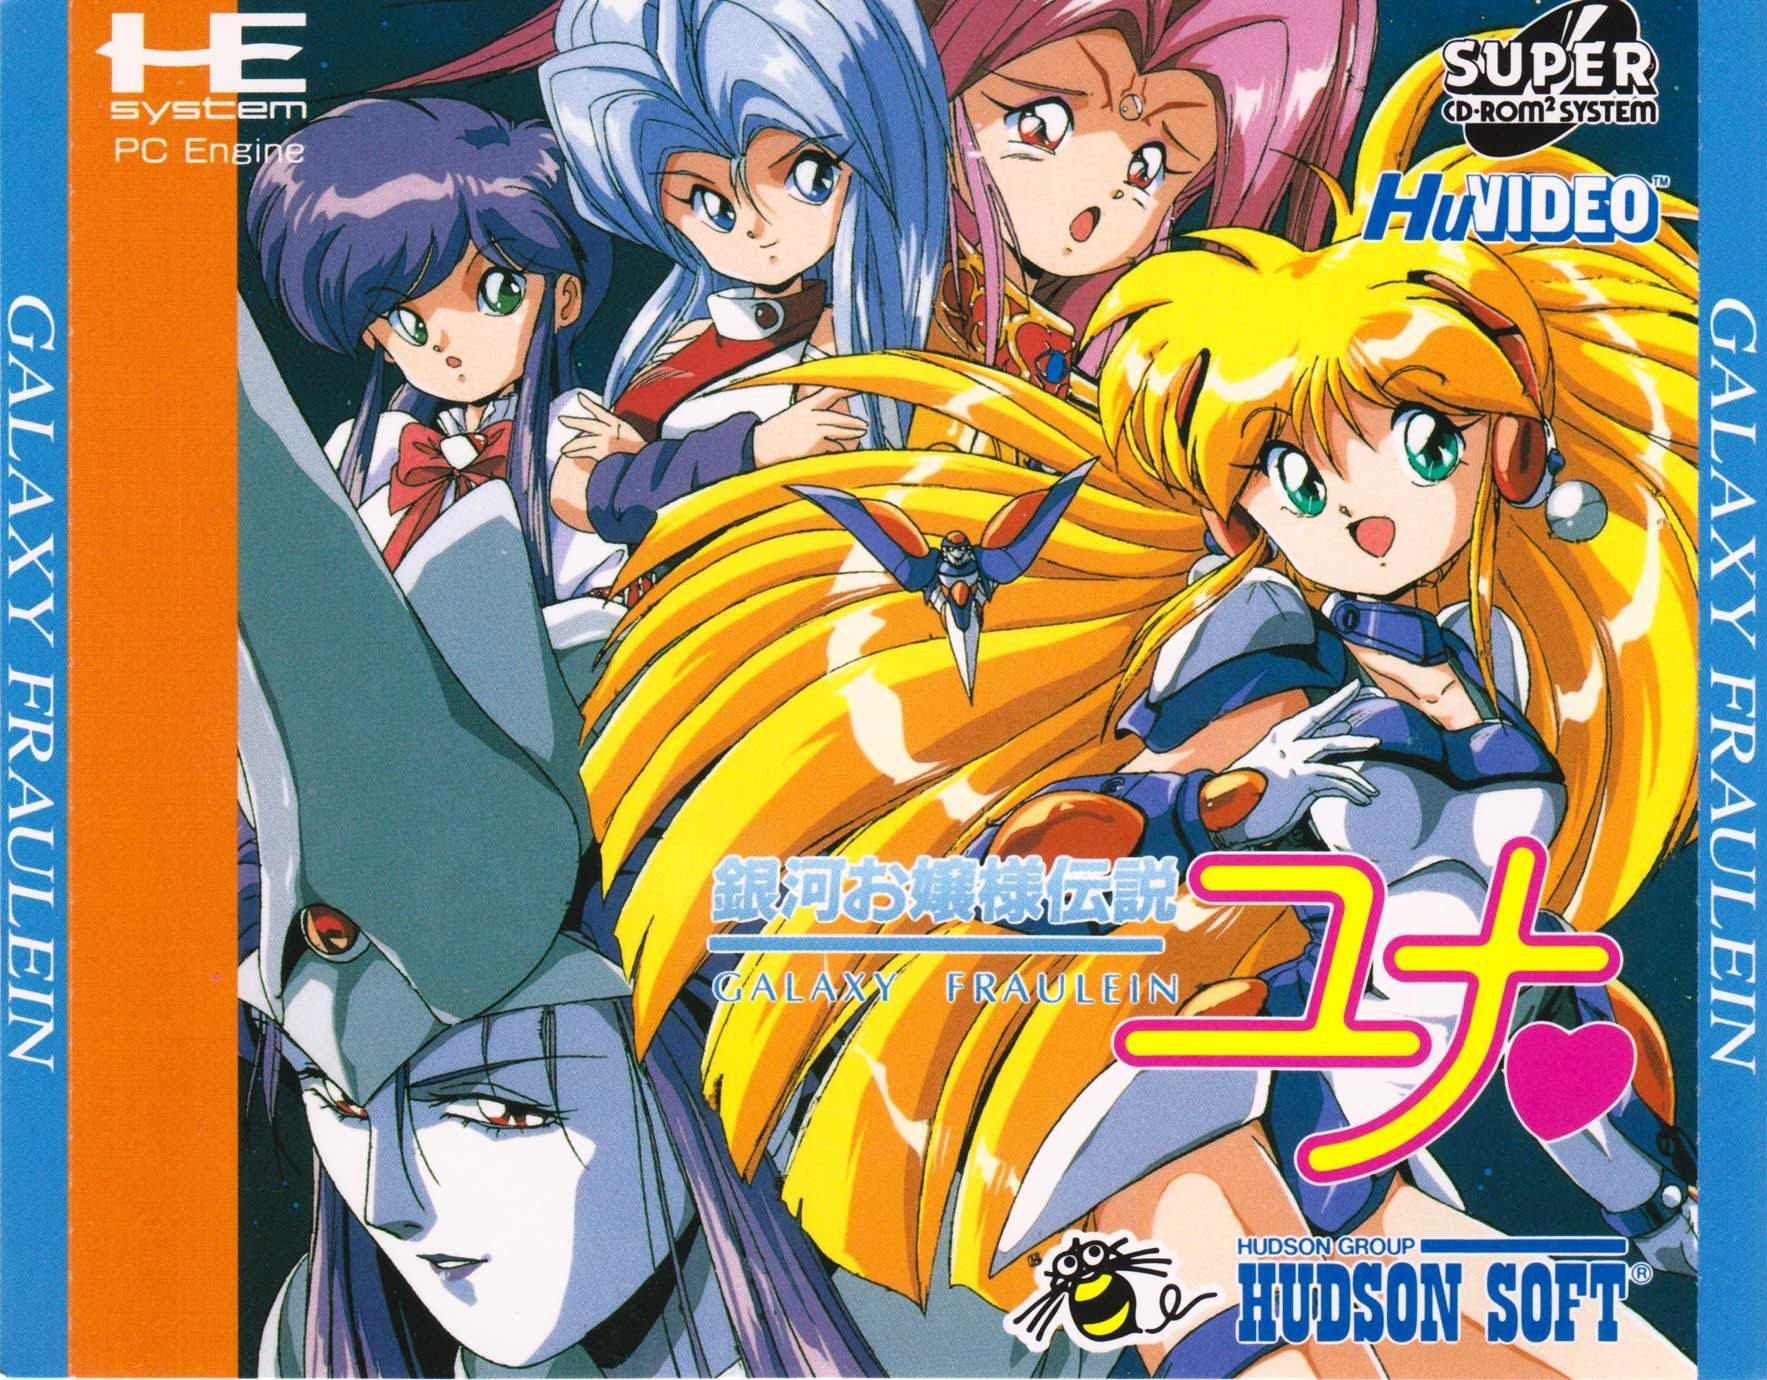 Galaxy Fraulein Yuna PC Engine SuperCD Box Art Retro